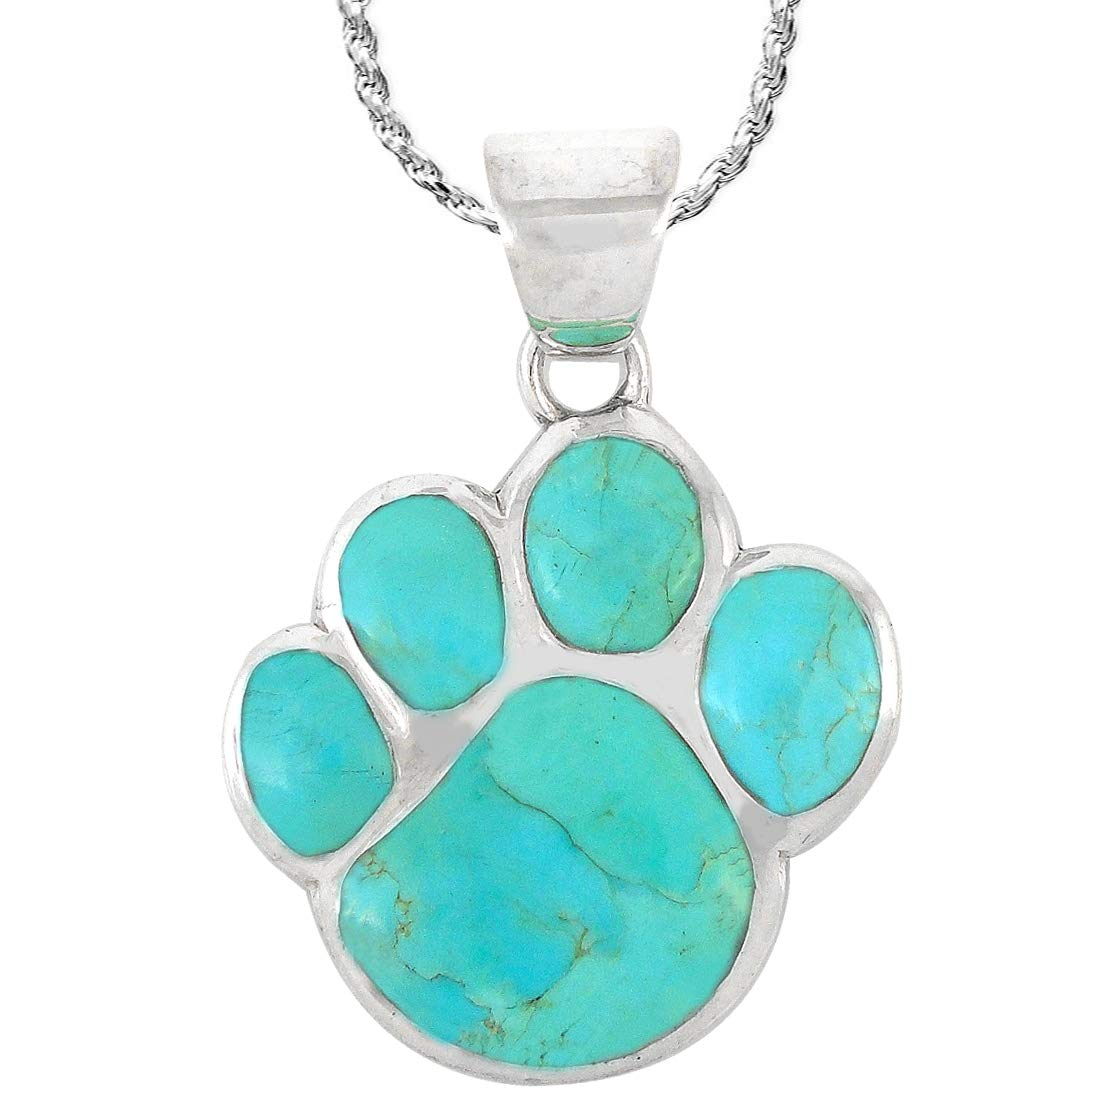 Dog or Cat Paw Necklace Pendant 925 Sterling Silver Genuine Gemstones with 20 Chain